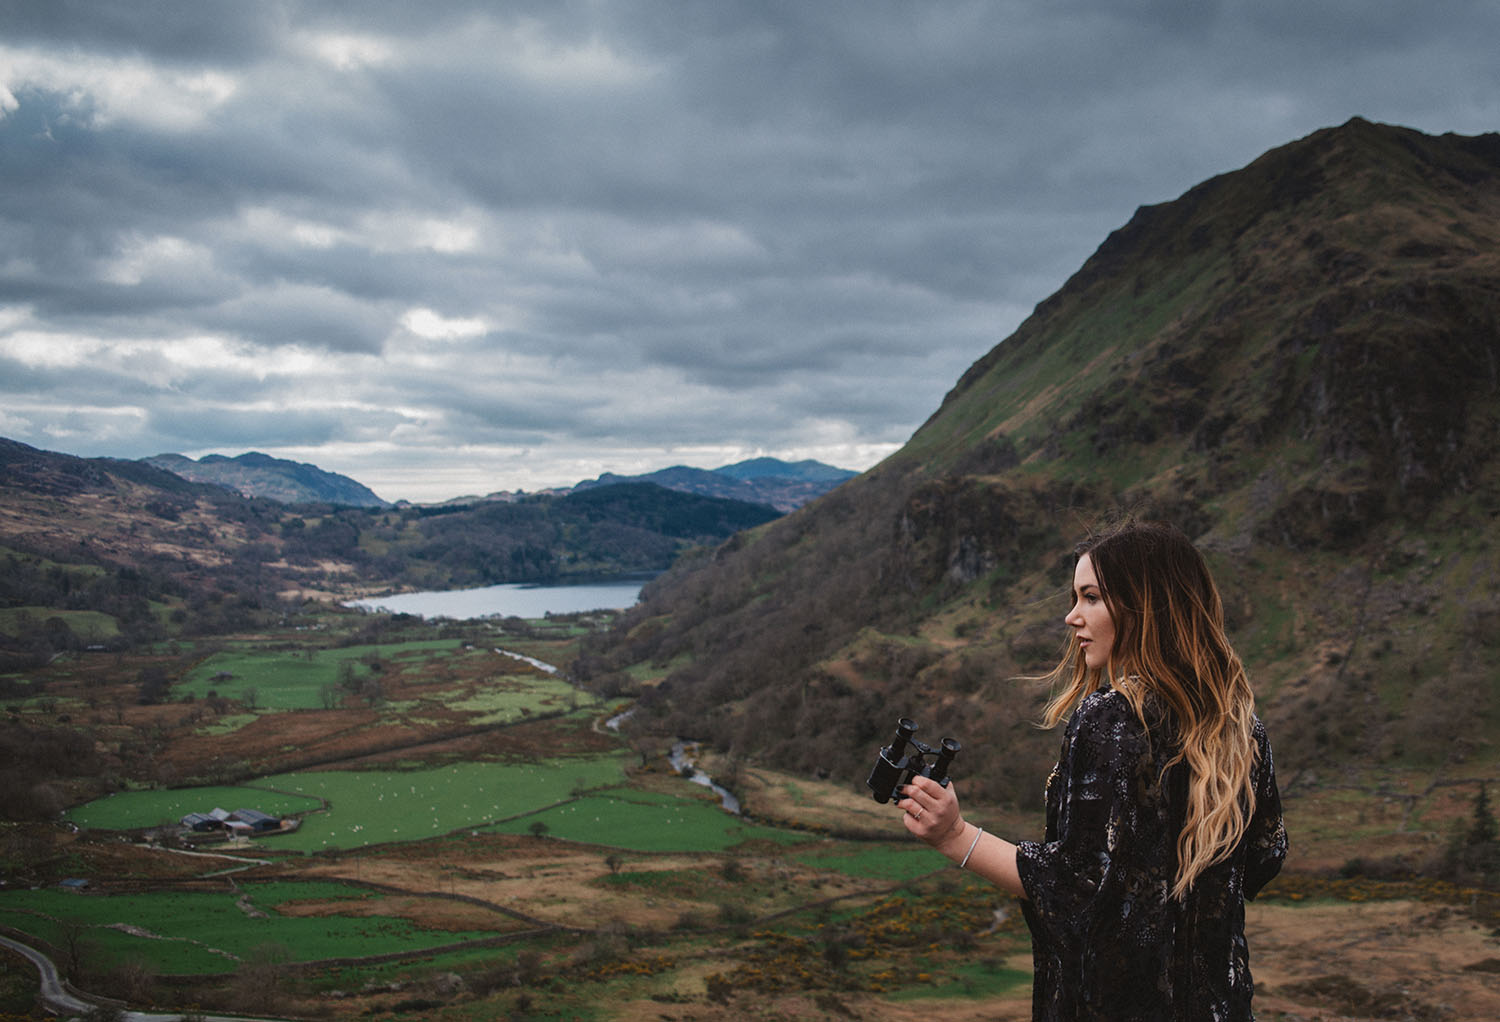 Girl with binoculars standing in front of Nant Gwynant Pass - A King Arthur: Legend of the Sword Filming Location in Wales